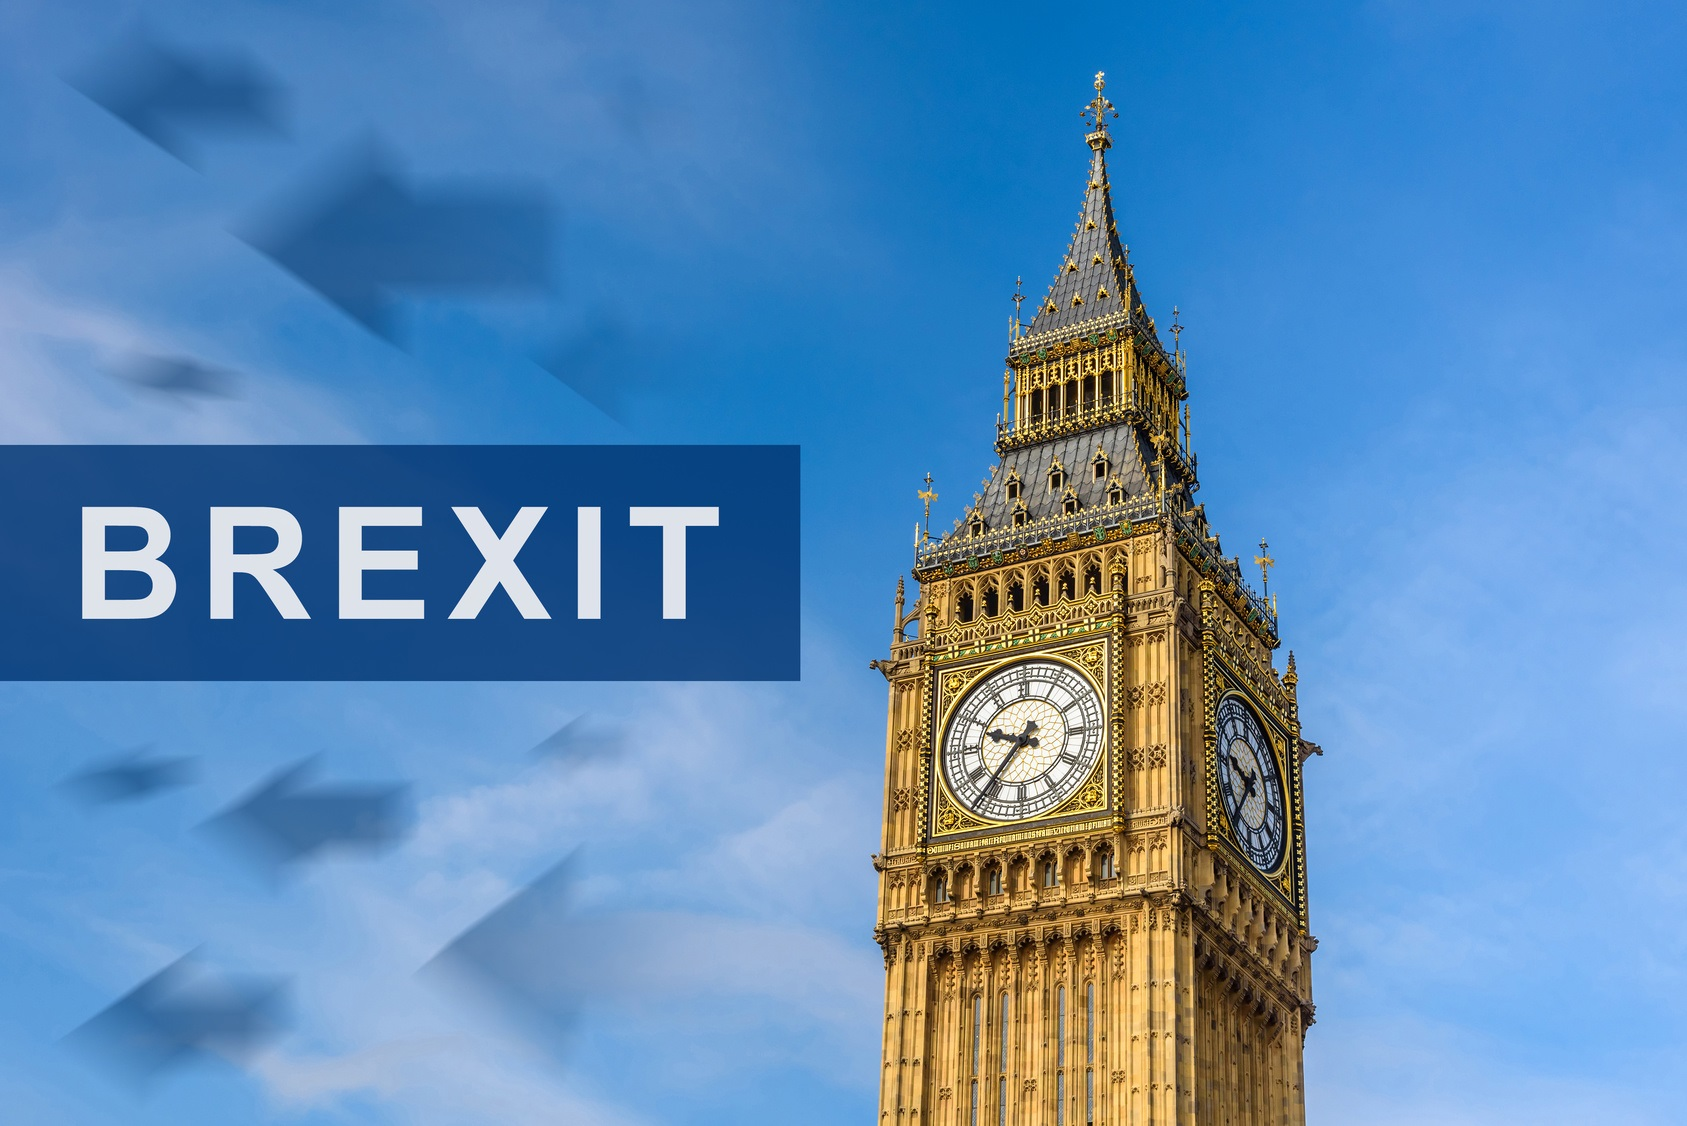 brexit or british exit with Big Ben Clock Tower, London, England, UK